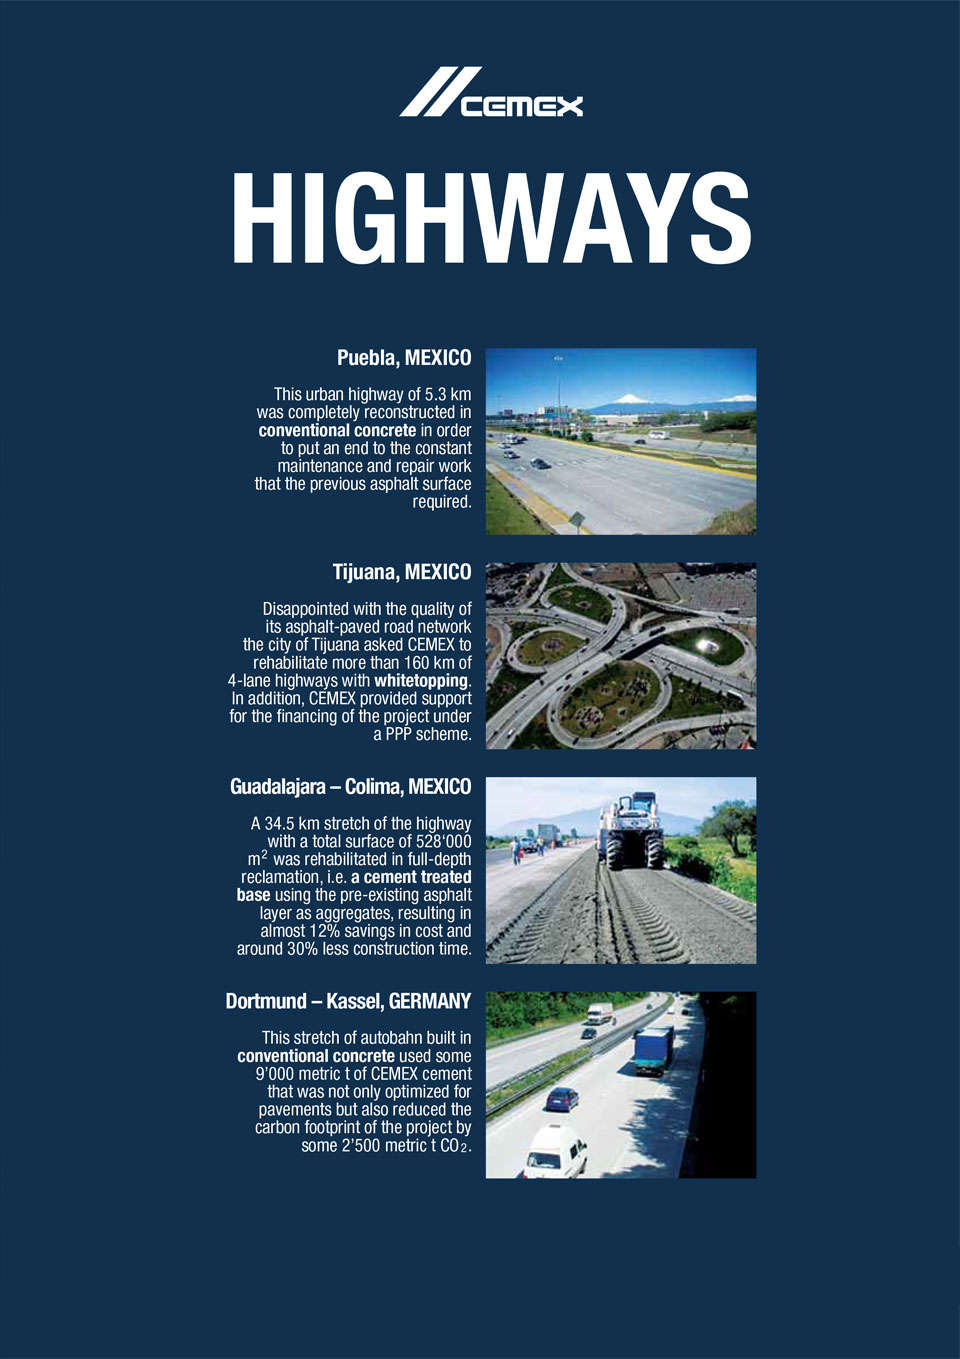 the image shows several of the highways that CEMEX has helped with the construction of